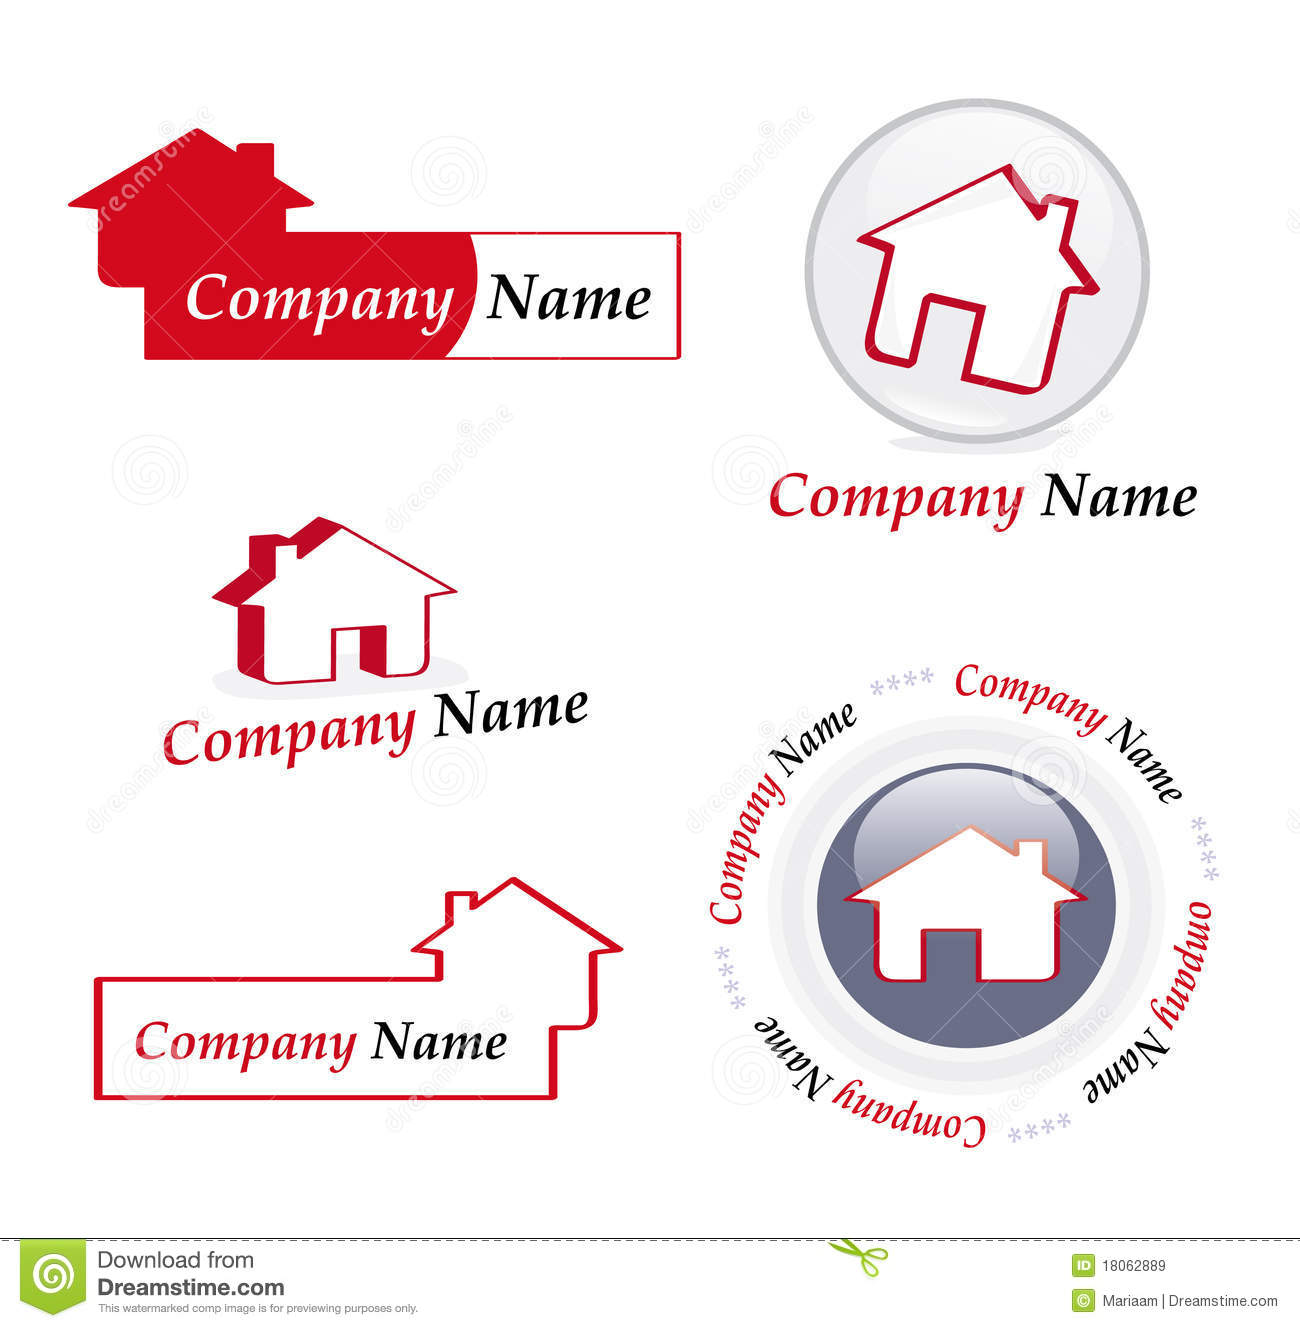 Real estate company logos royalty free stock images image 18062889